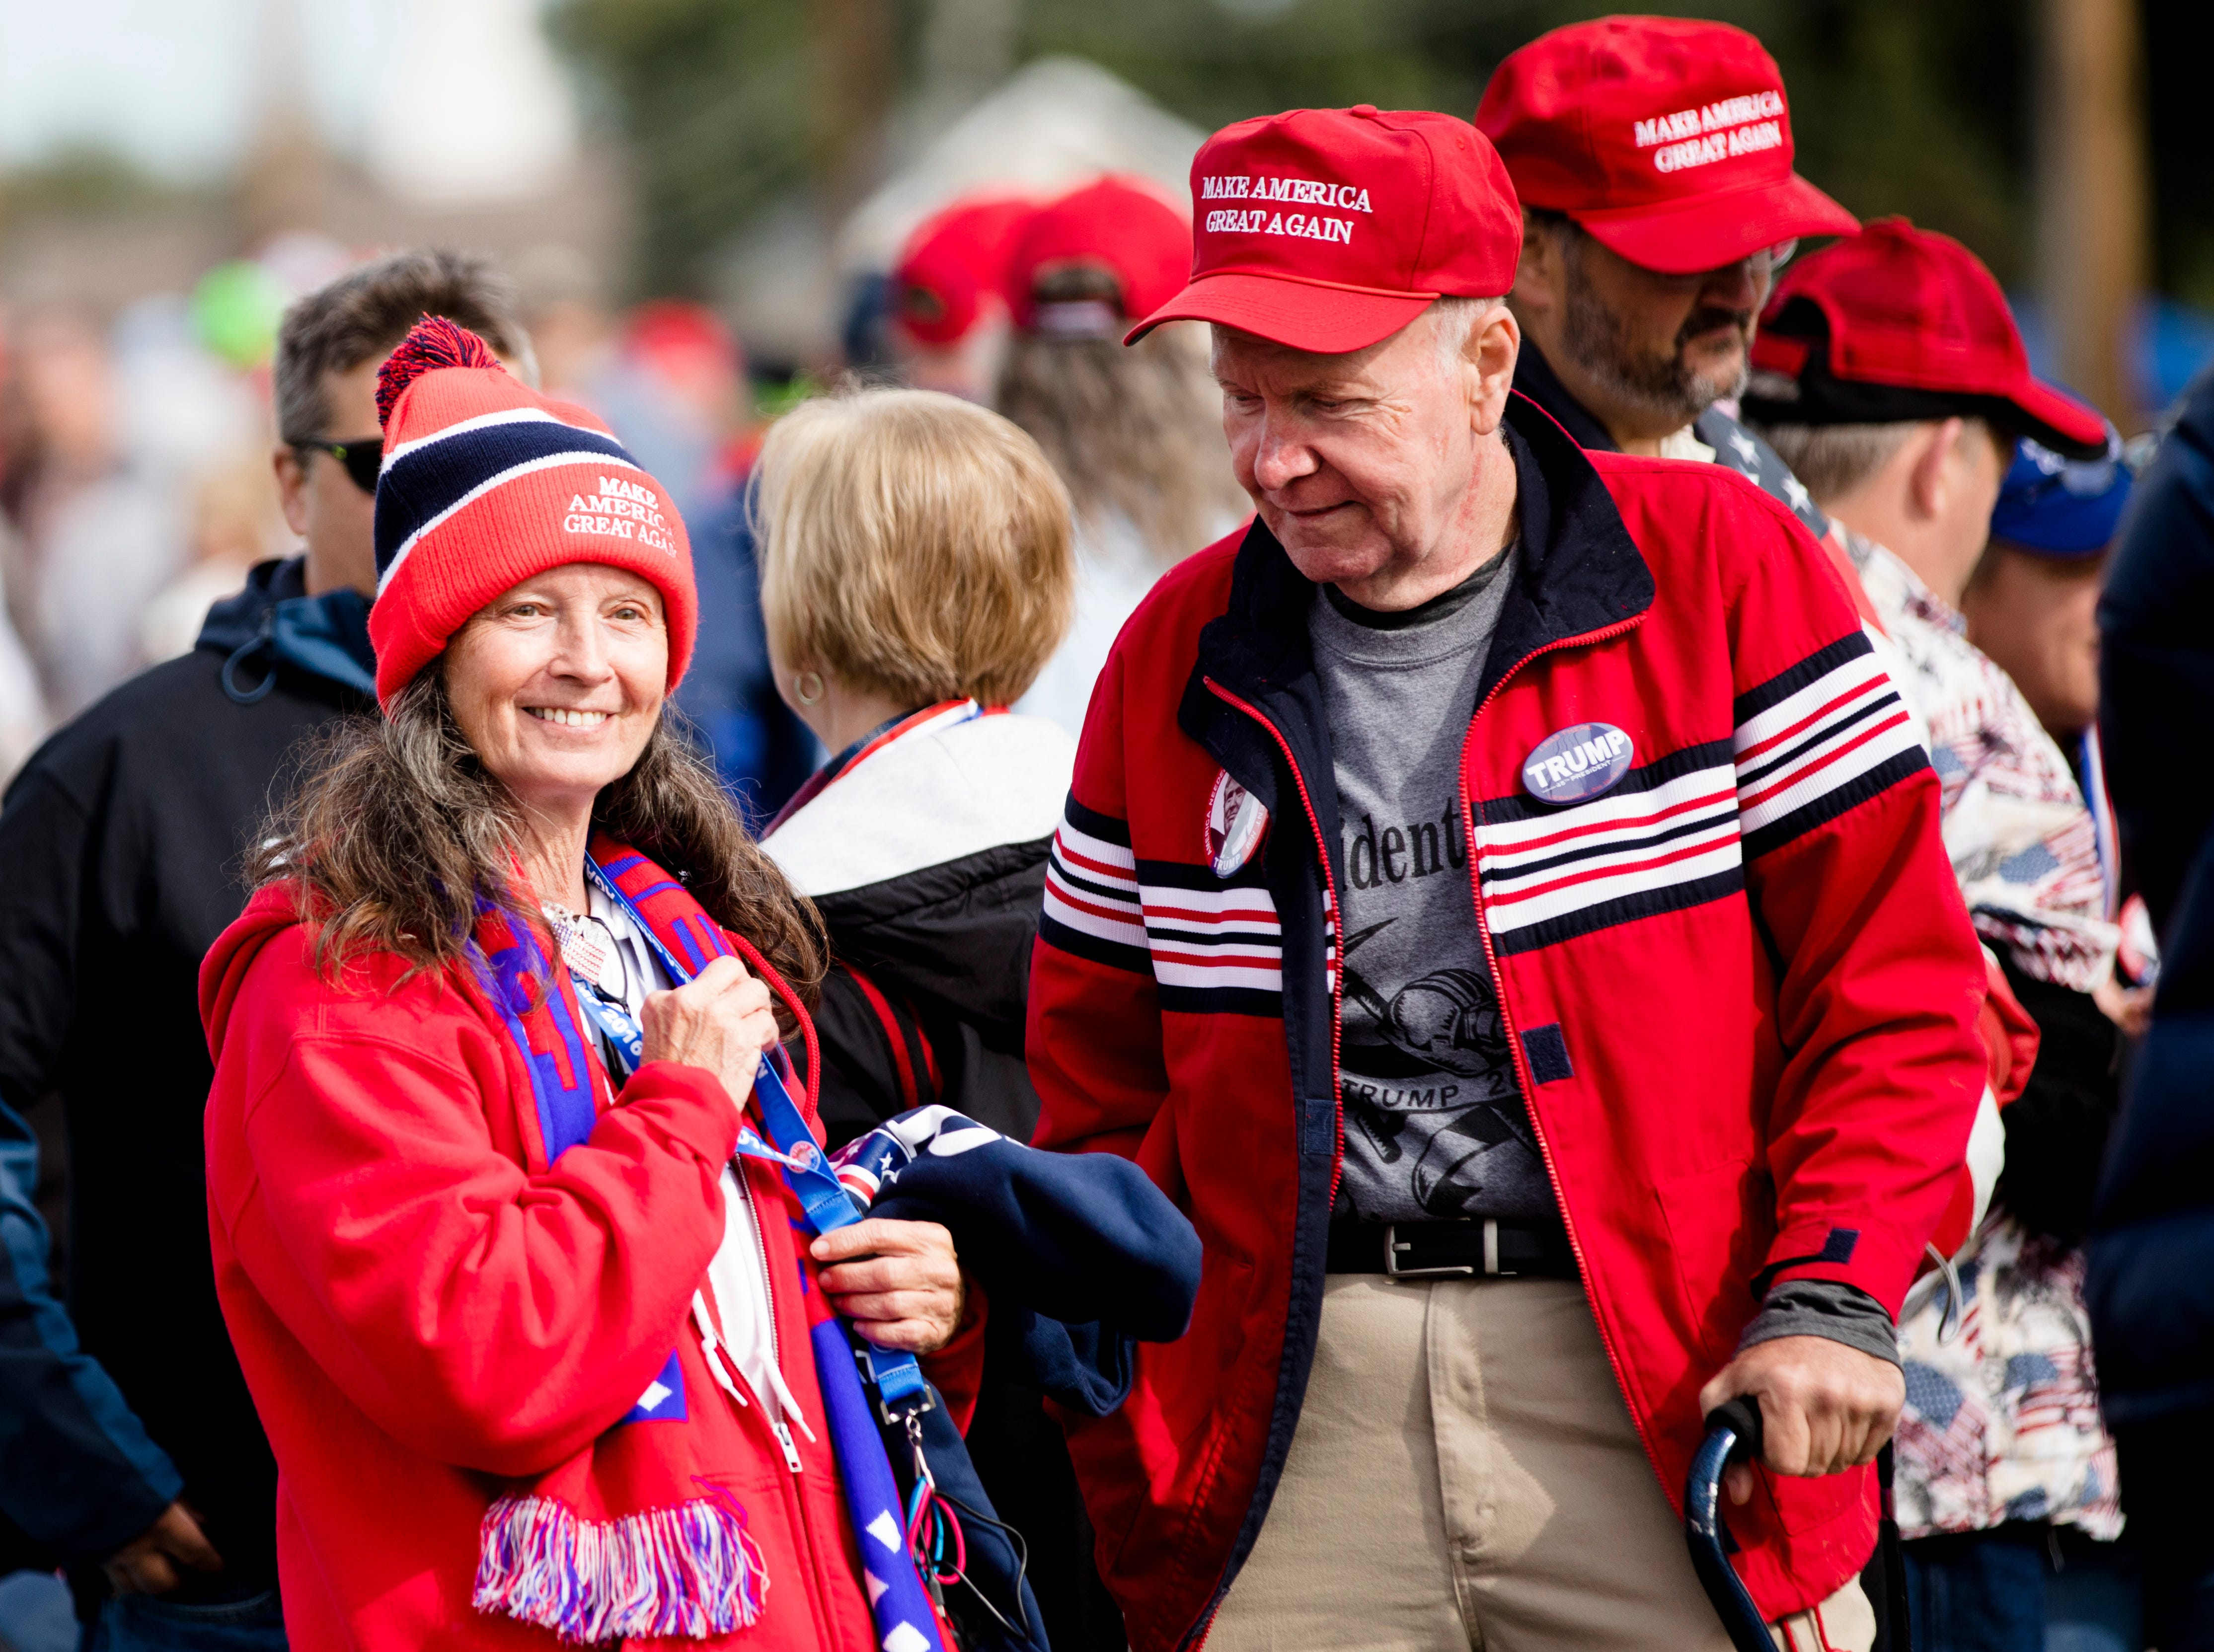 Arvil Runyon and his wife, Emma Runyon, of West Virginia, wait in line for President Donald J. Trump's Make America Great Again Rally in Lebanon, Ohio, on Friday, Oct. 12, 2018.